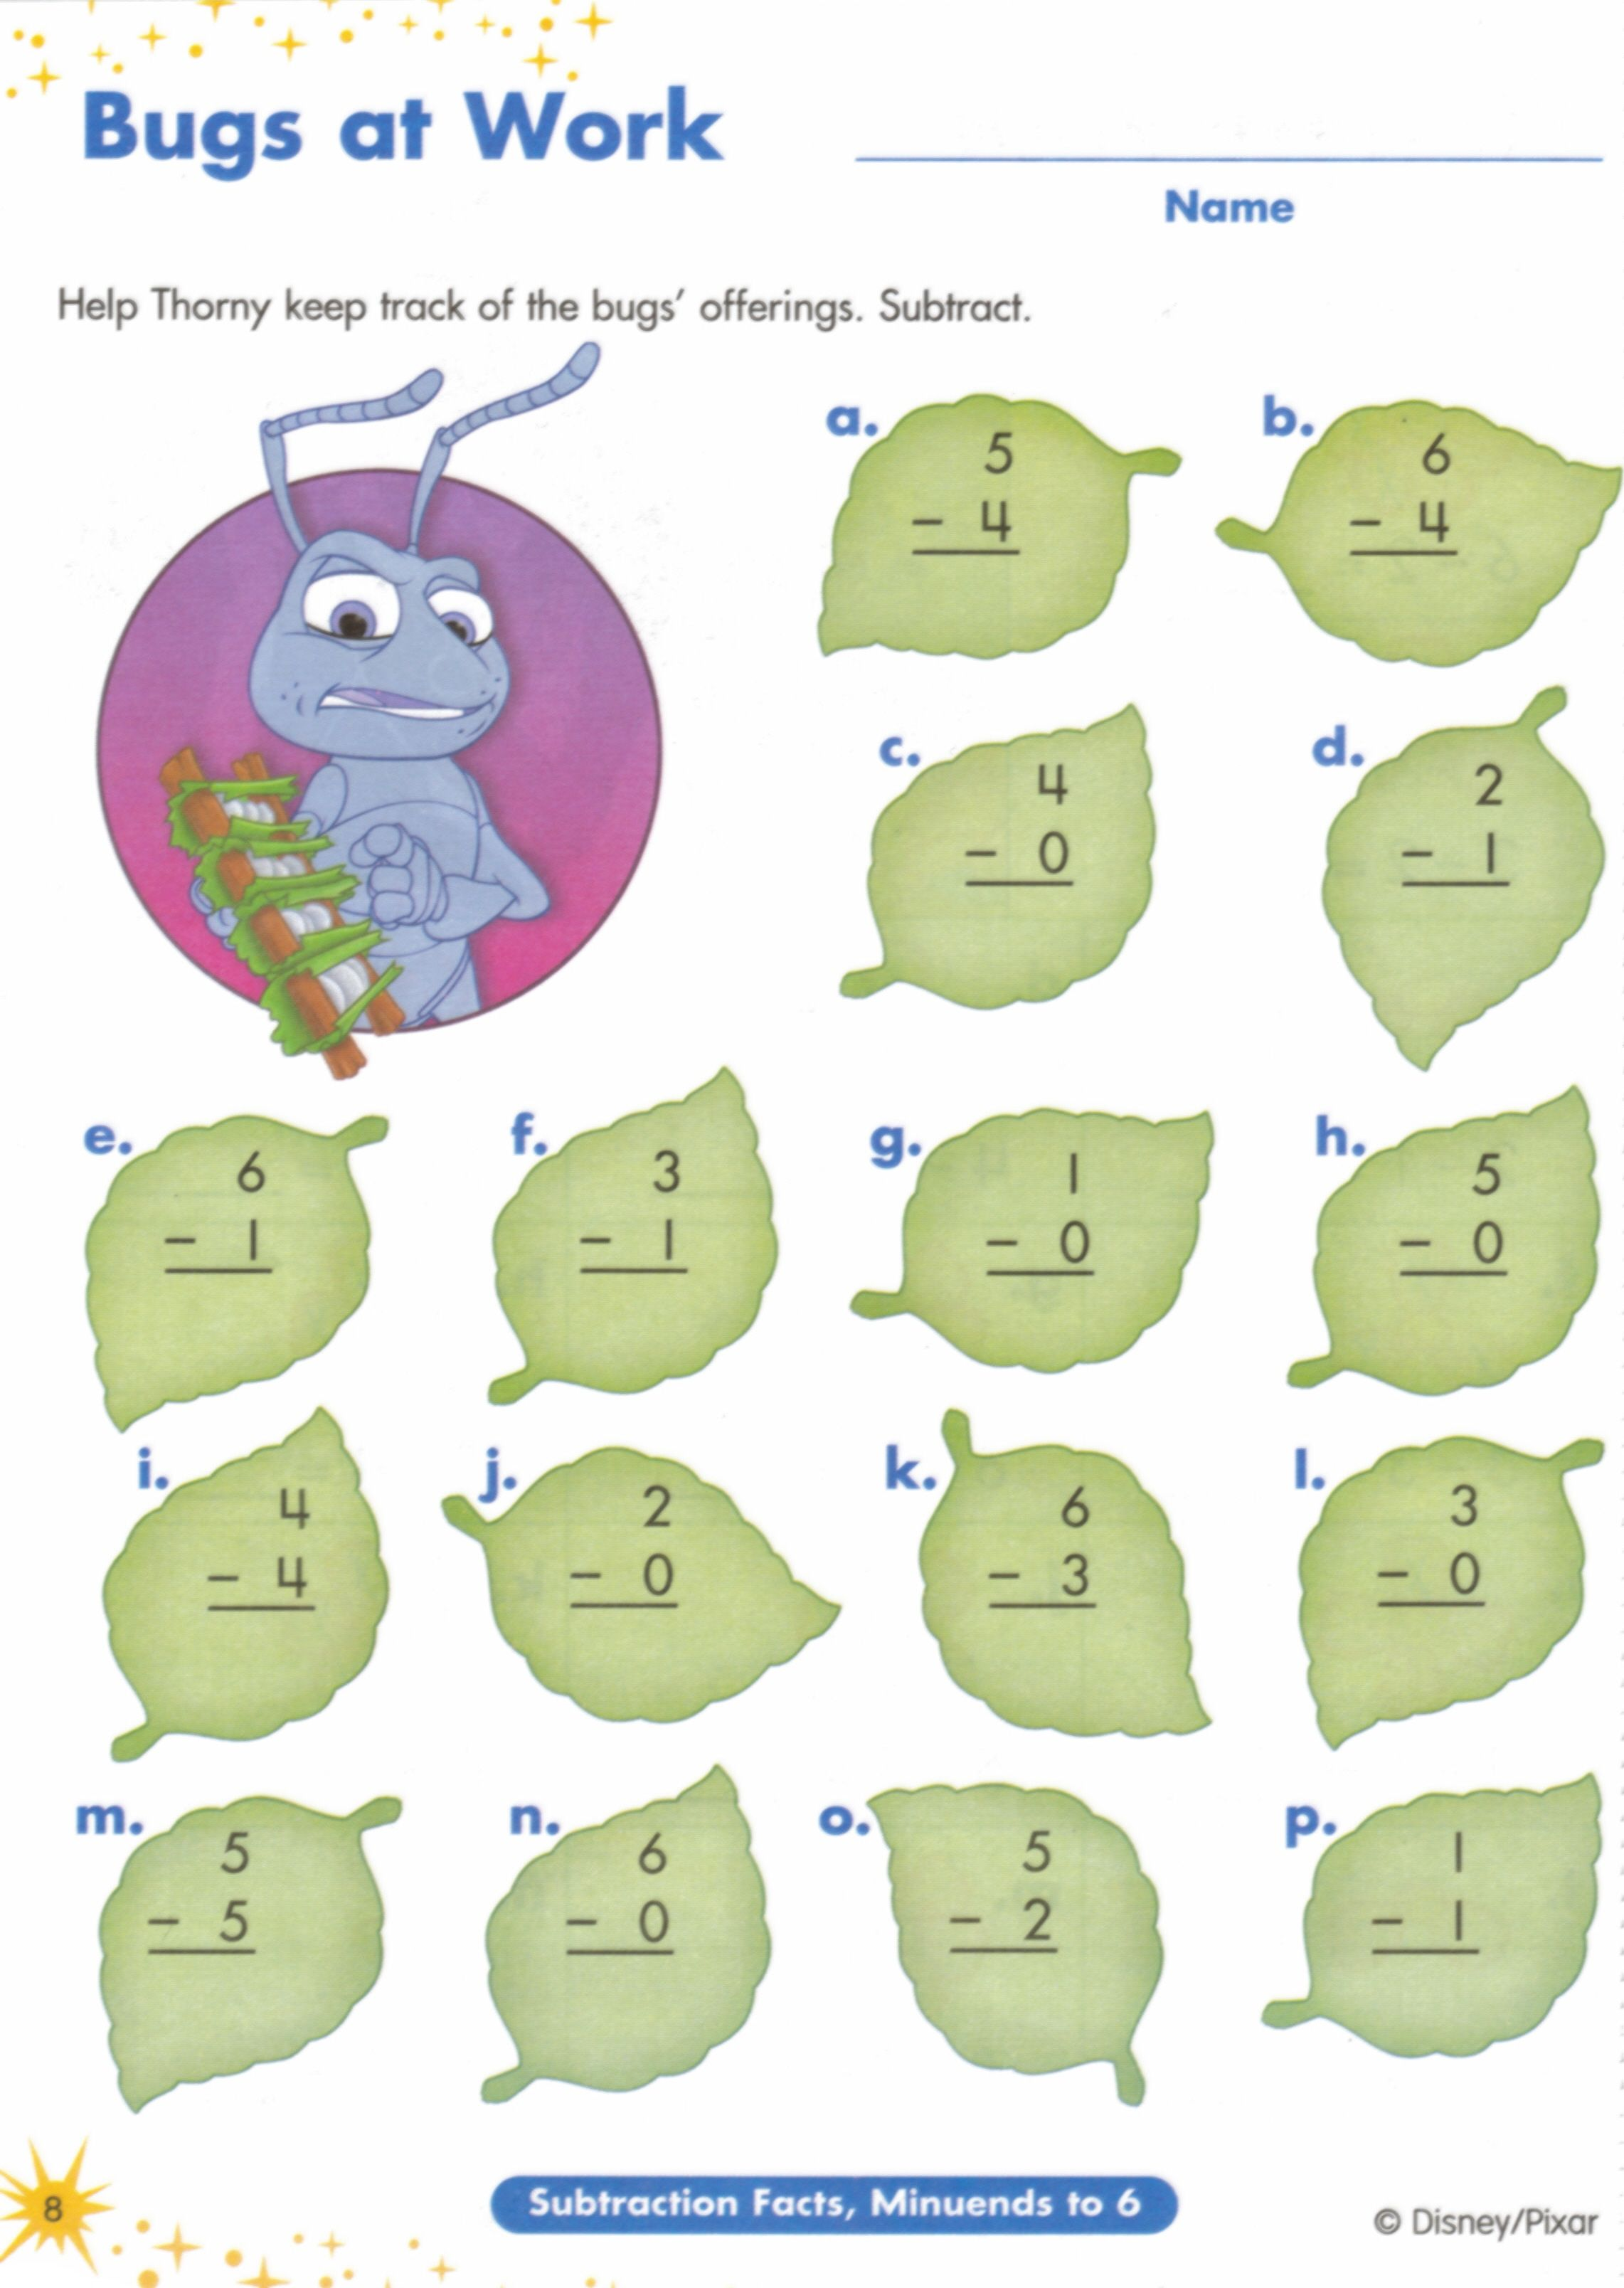 Aldiablosus  Winsome  Images About Worksheets On Pinterest  Fun Facts For Kids  With Fair  Images About Worksheets On Pinterest  Fun Facts For Kids Earth Day Worksheets And Jungles With Attractive Math Printable Worksheet Also Subtracting  Worksheet In Addition Decimal Number Lines Worksheets And Pronouns Worksheets Grade  As Well As Worksheets On Homographs Additionally  X Table Worksheet From Pinterestcom With Aldiablosus  Fair  Images About Worksheets On Pinterest  Fun Facts For Kids  With Attractive  Images About Worksheets On Pinterest  Fun Facts For Kids Earth Day Worksheets And Jungles And Winsome Math Printable Worksheet Also Subtracting  Worksheet In Addition Decimal Number Lines Worksheets From Pinterestcom